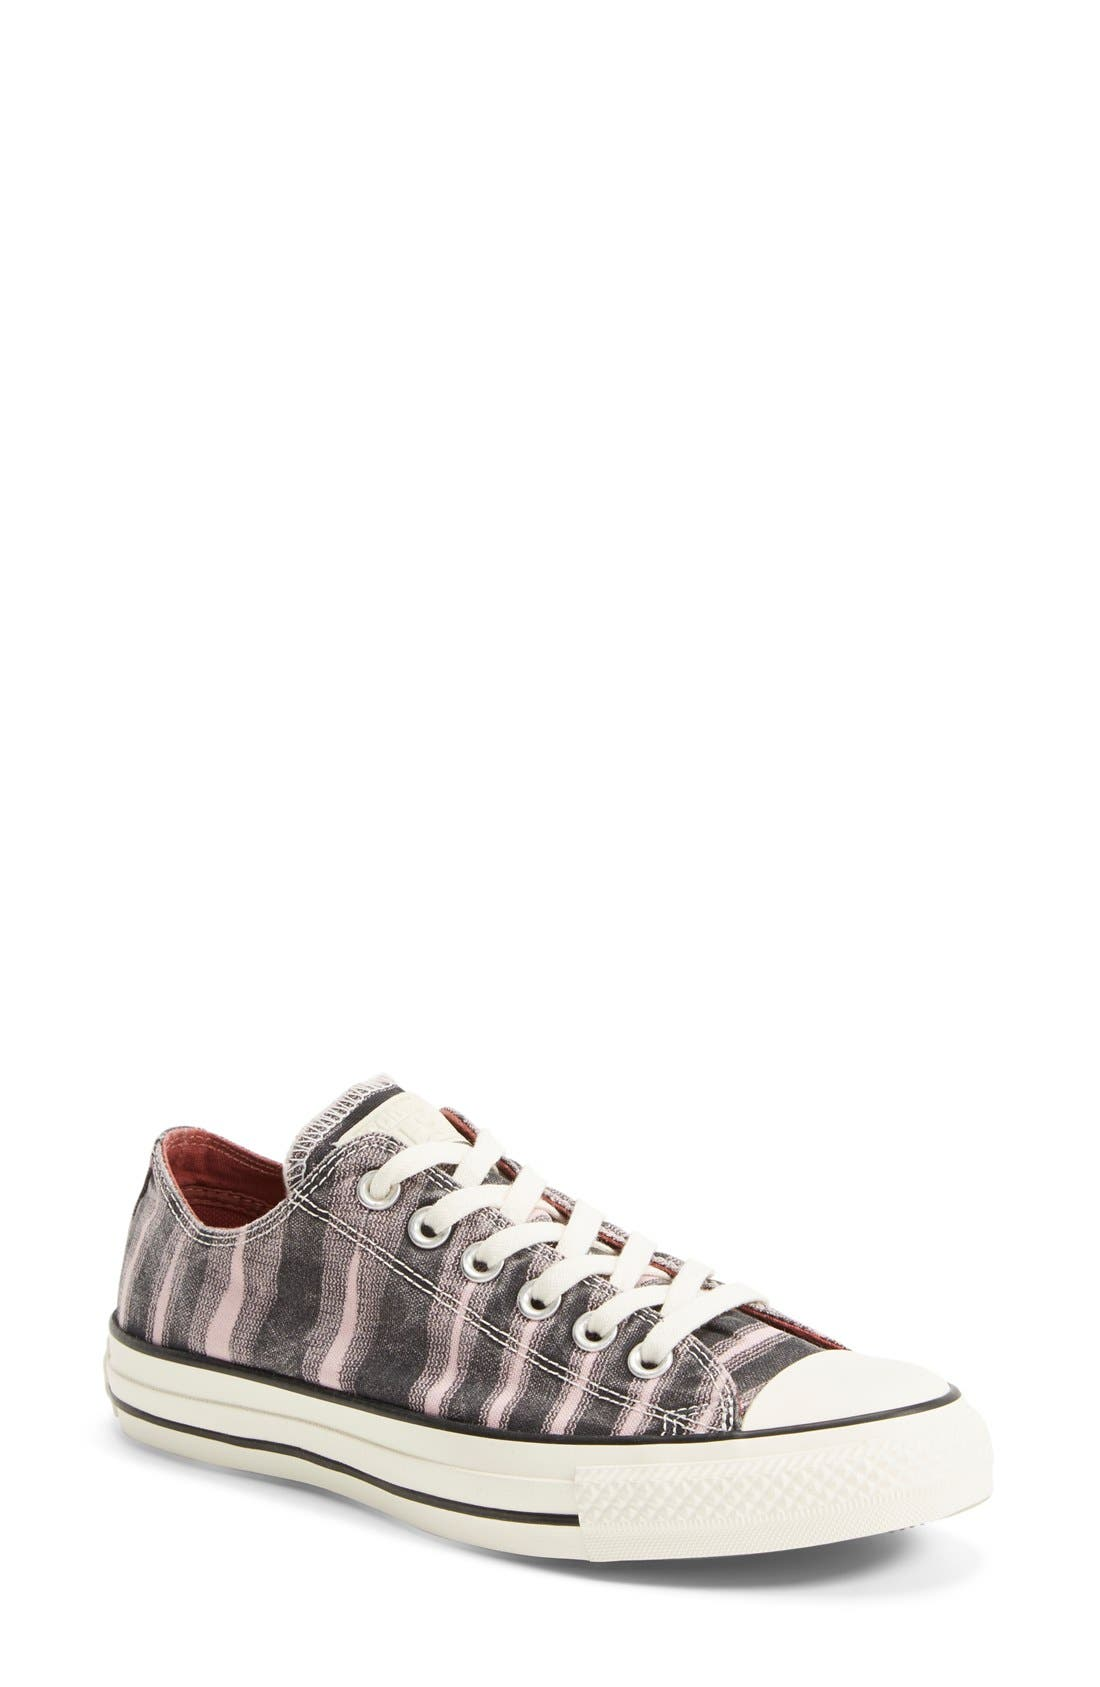 Main Image - Converse x Missoni Chuck Taylor® All Star® 'Washed Space Dye' Sneaker (Women) (Online Only)